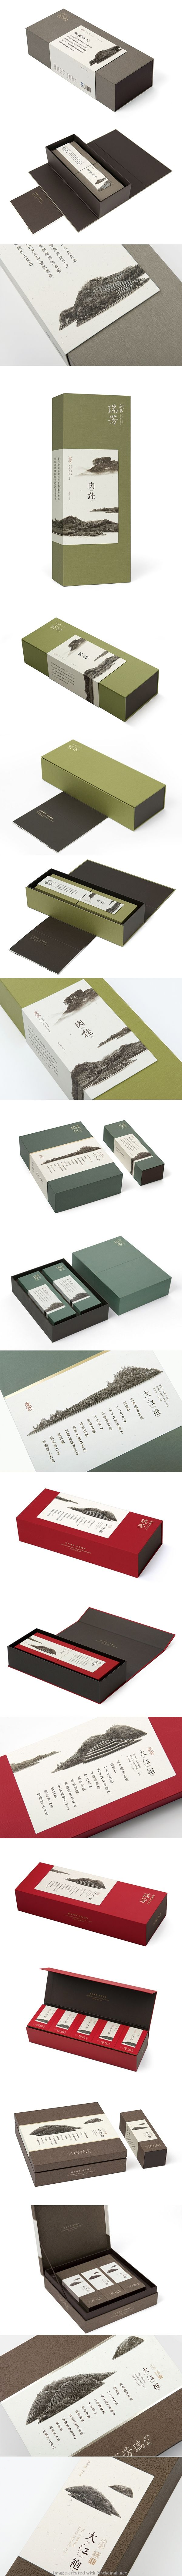 WUYI RUIFANG #tea #packaging Wuyi Rueifang tea, founded in 1899, by Mr Jiang Taiyuan in Wuyishan. | Designed by One &One > Behance